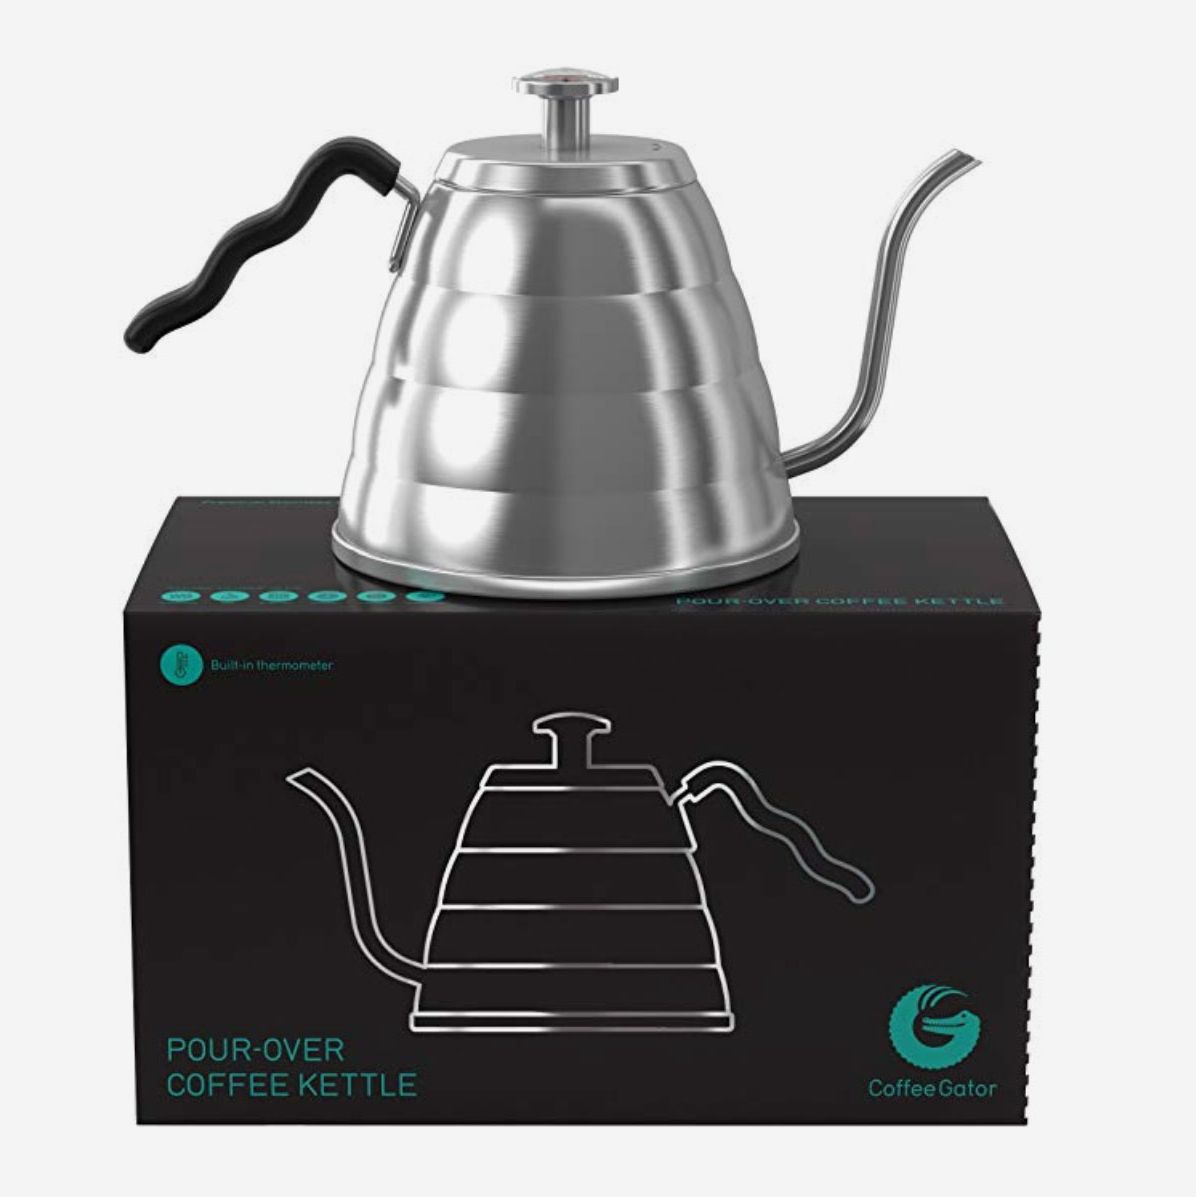 A stainless steel pour over kettle on the box it comes in